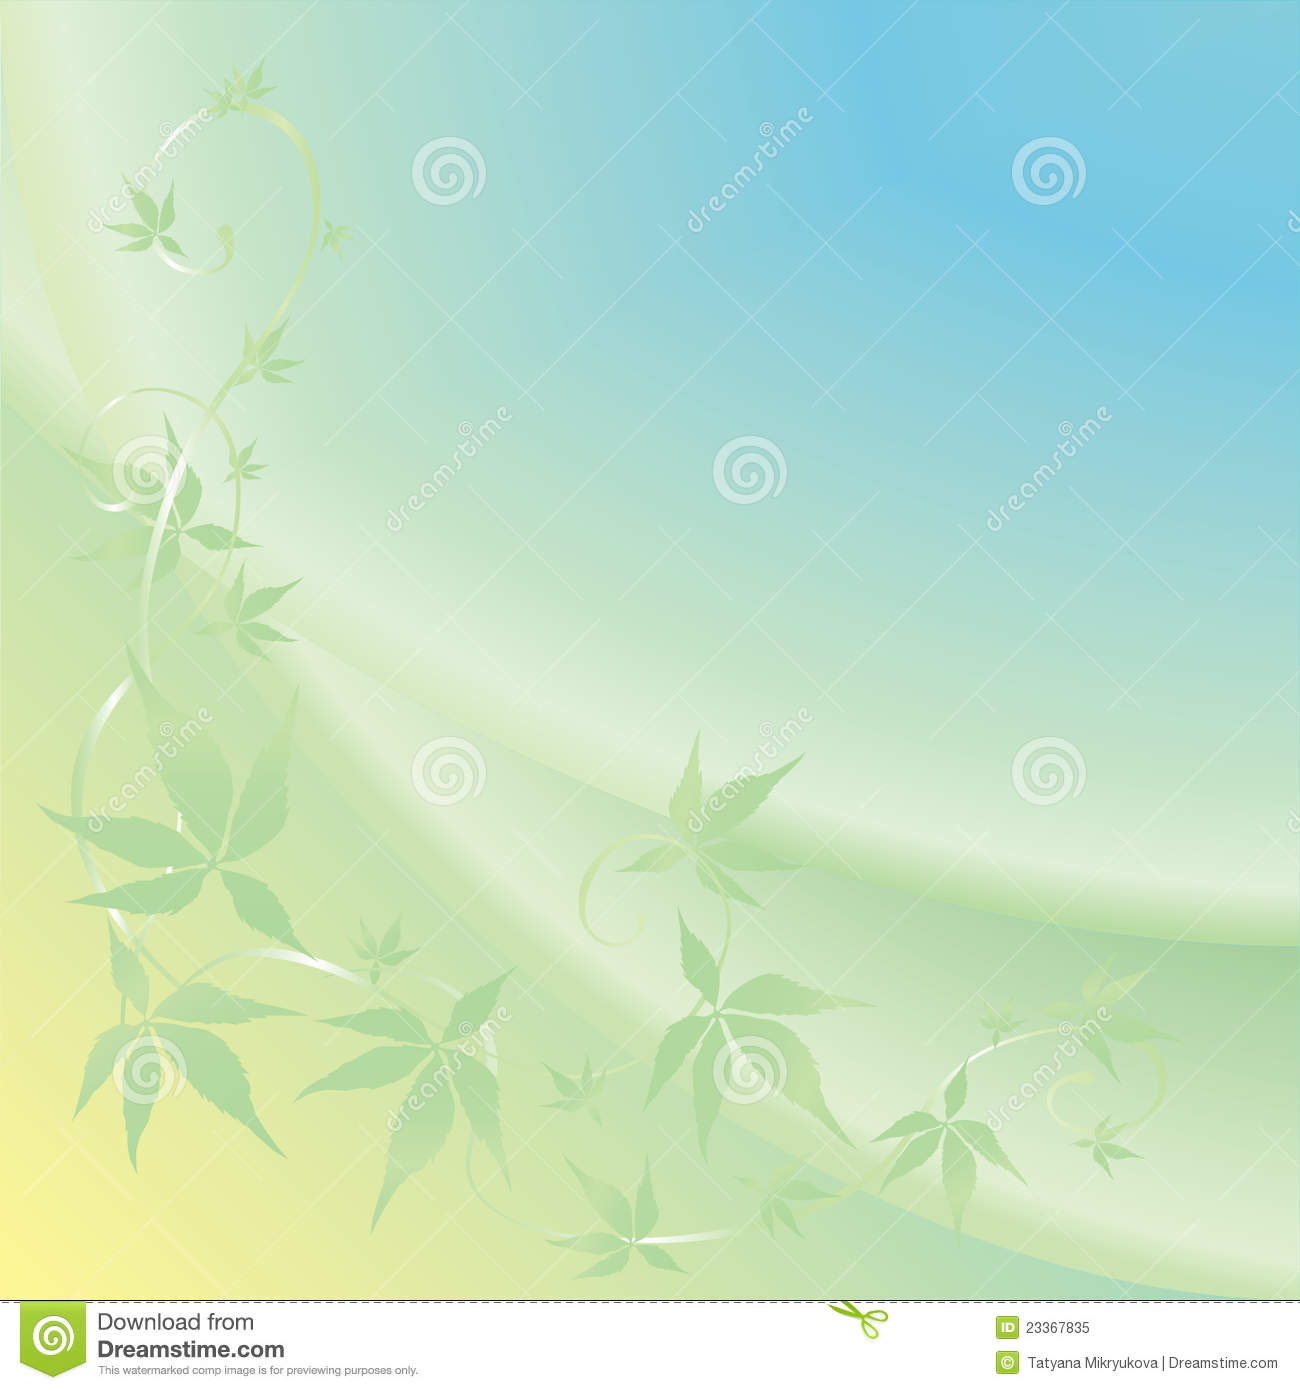 light green leaves background - photo #4